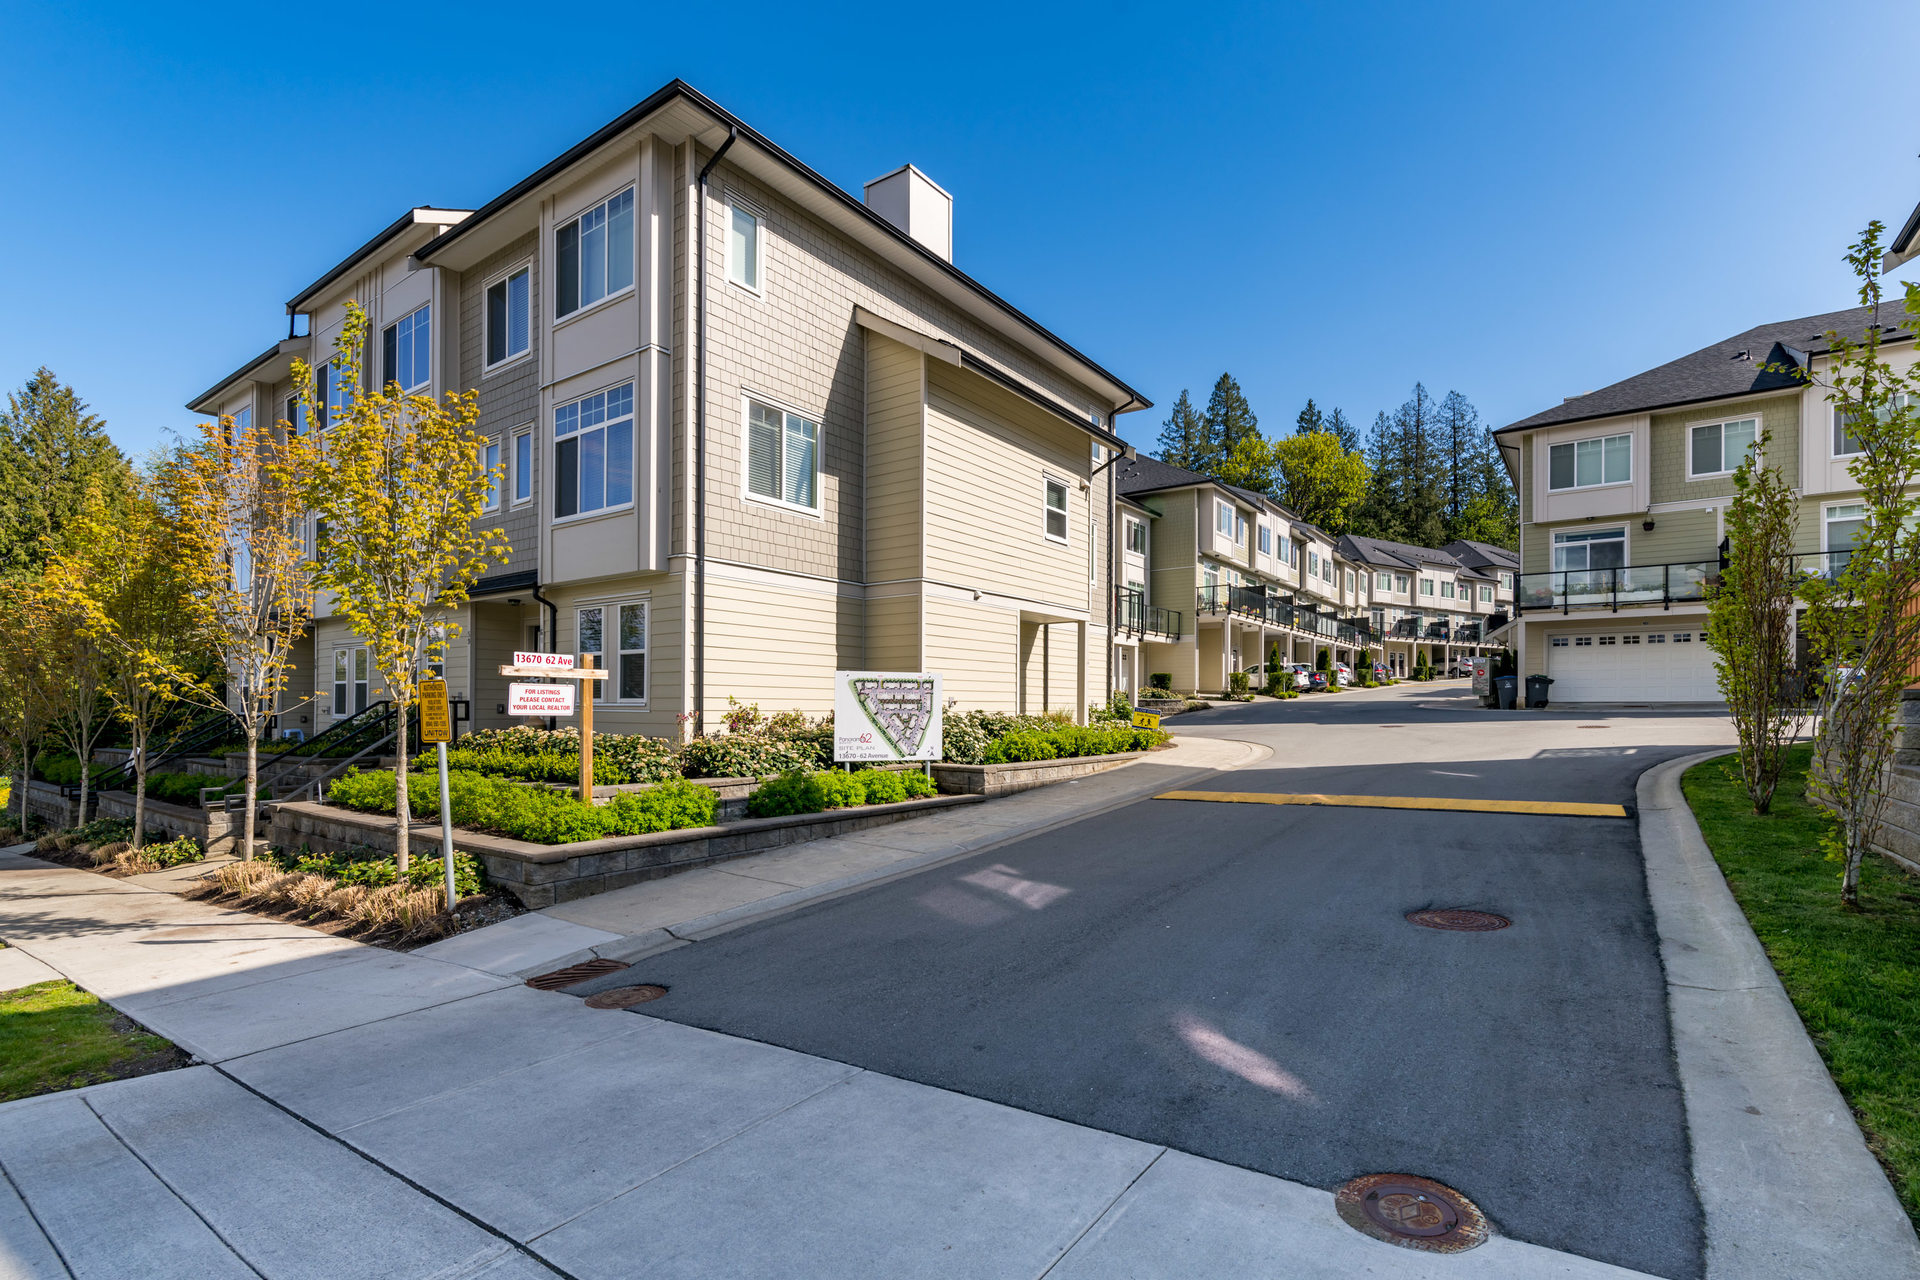 39 - 13670 62 Avenue, Panorama Ridge, Surrey